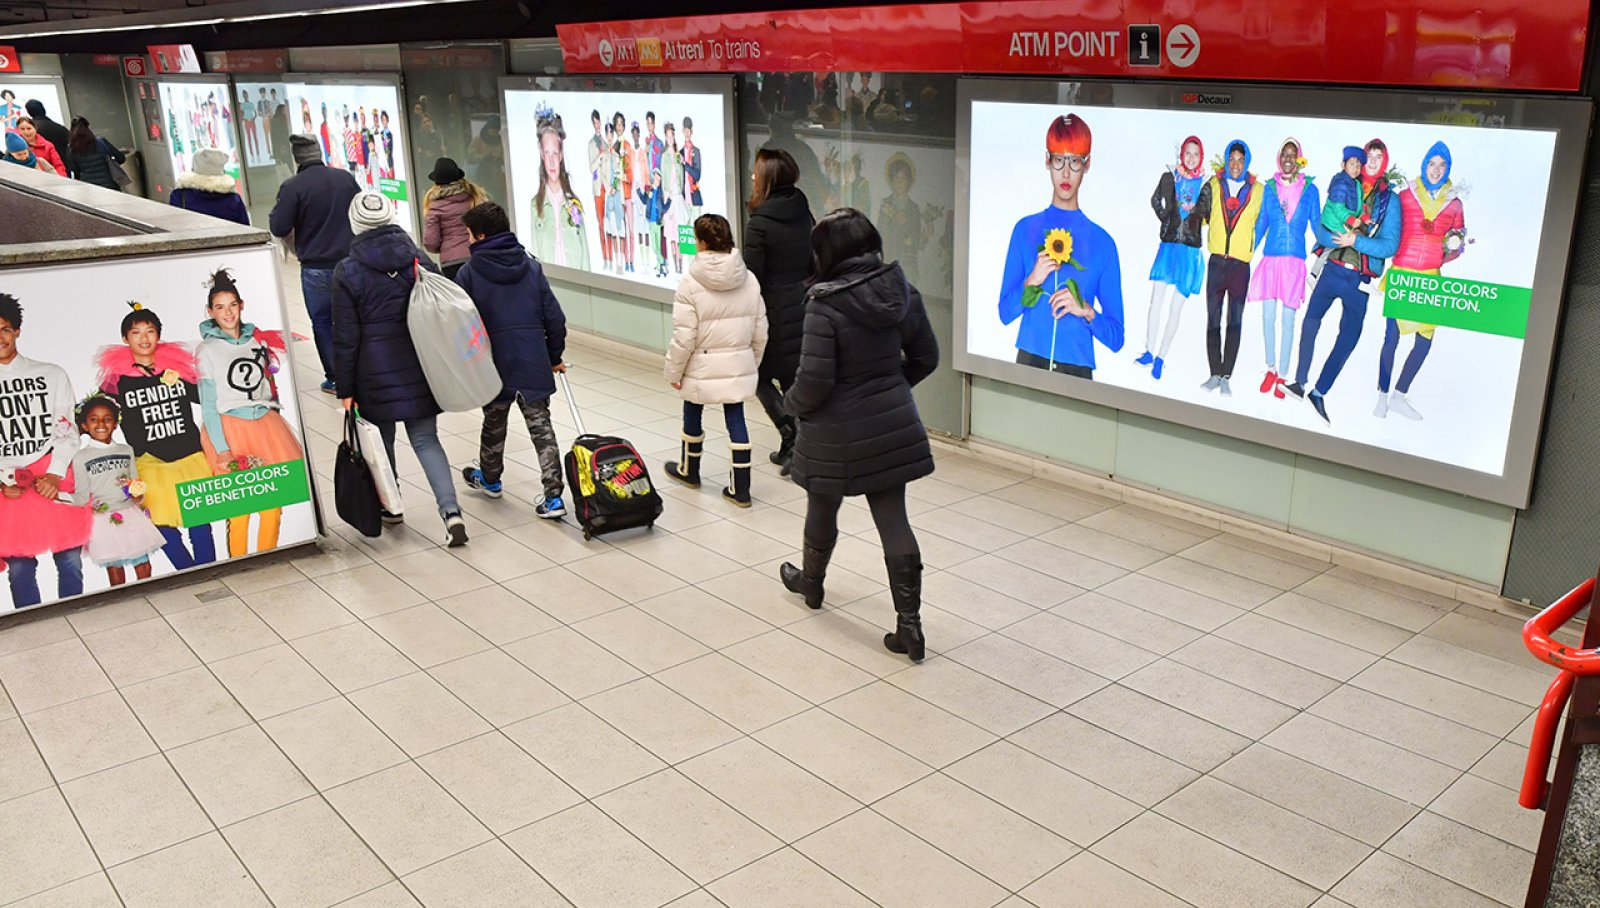 IGPDecaux Milano station domination per Benetton